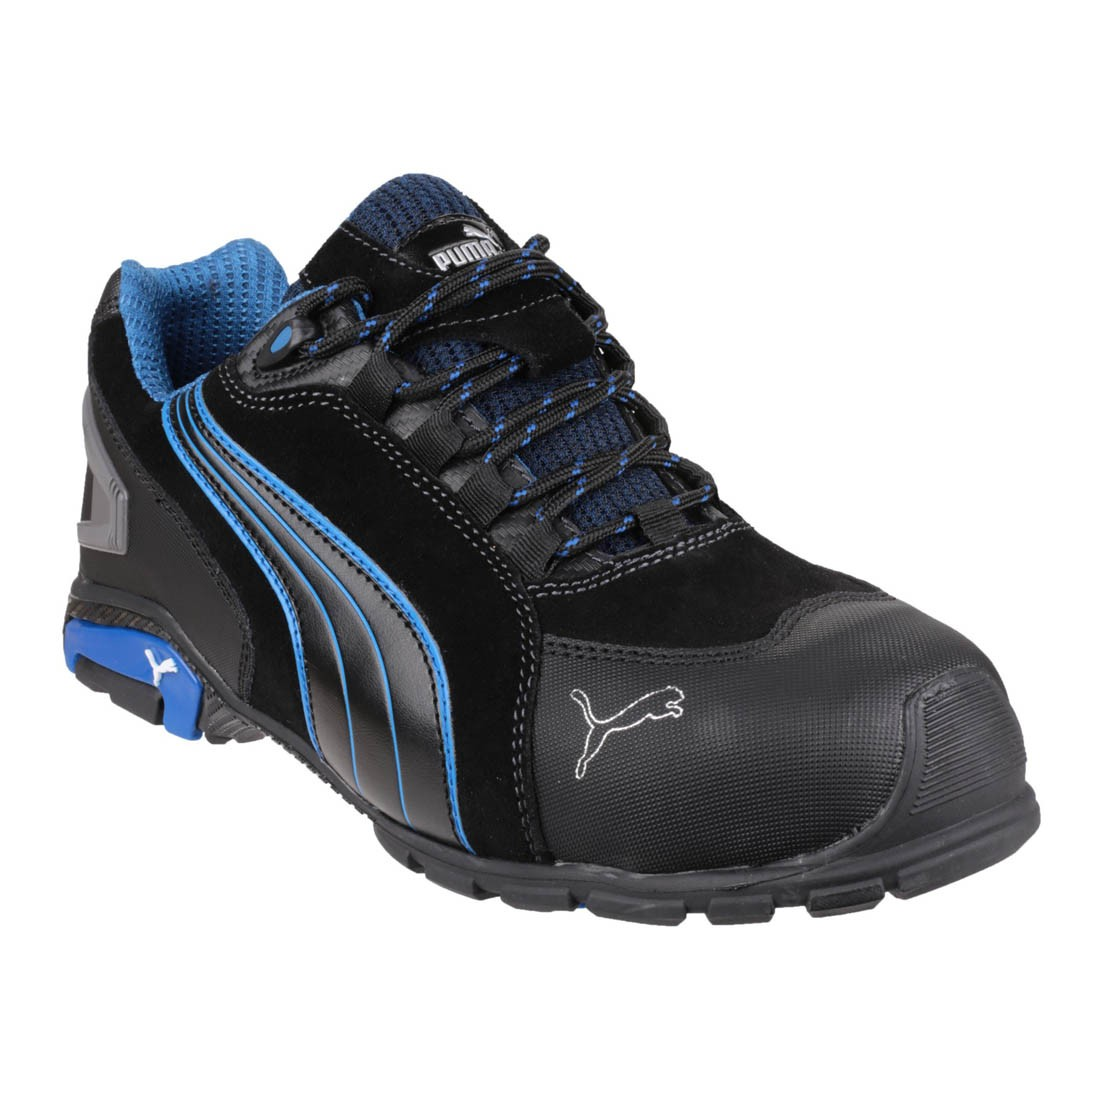 Lightweight Safety Shoes For Mens Uk